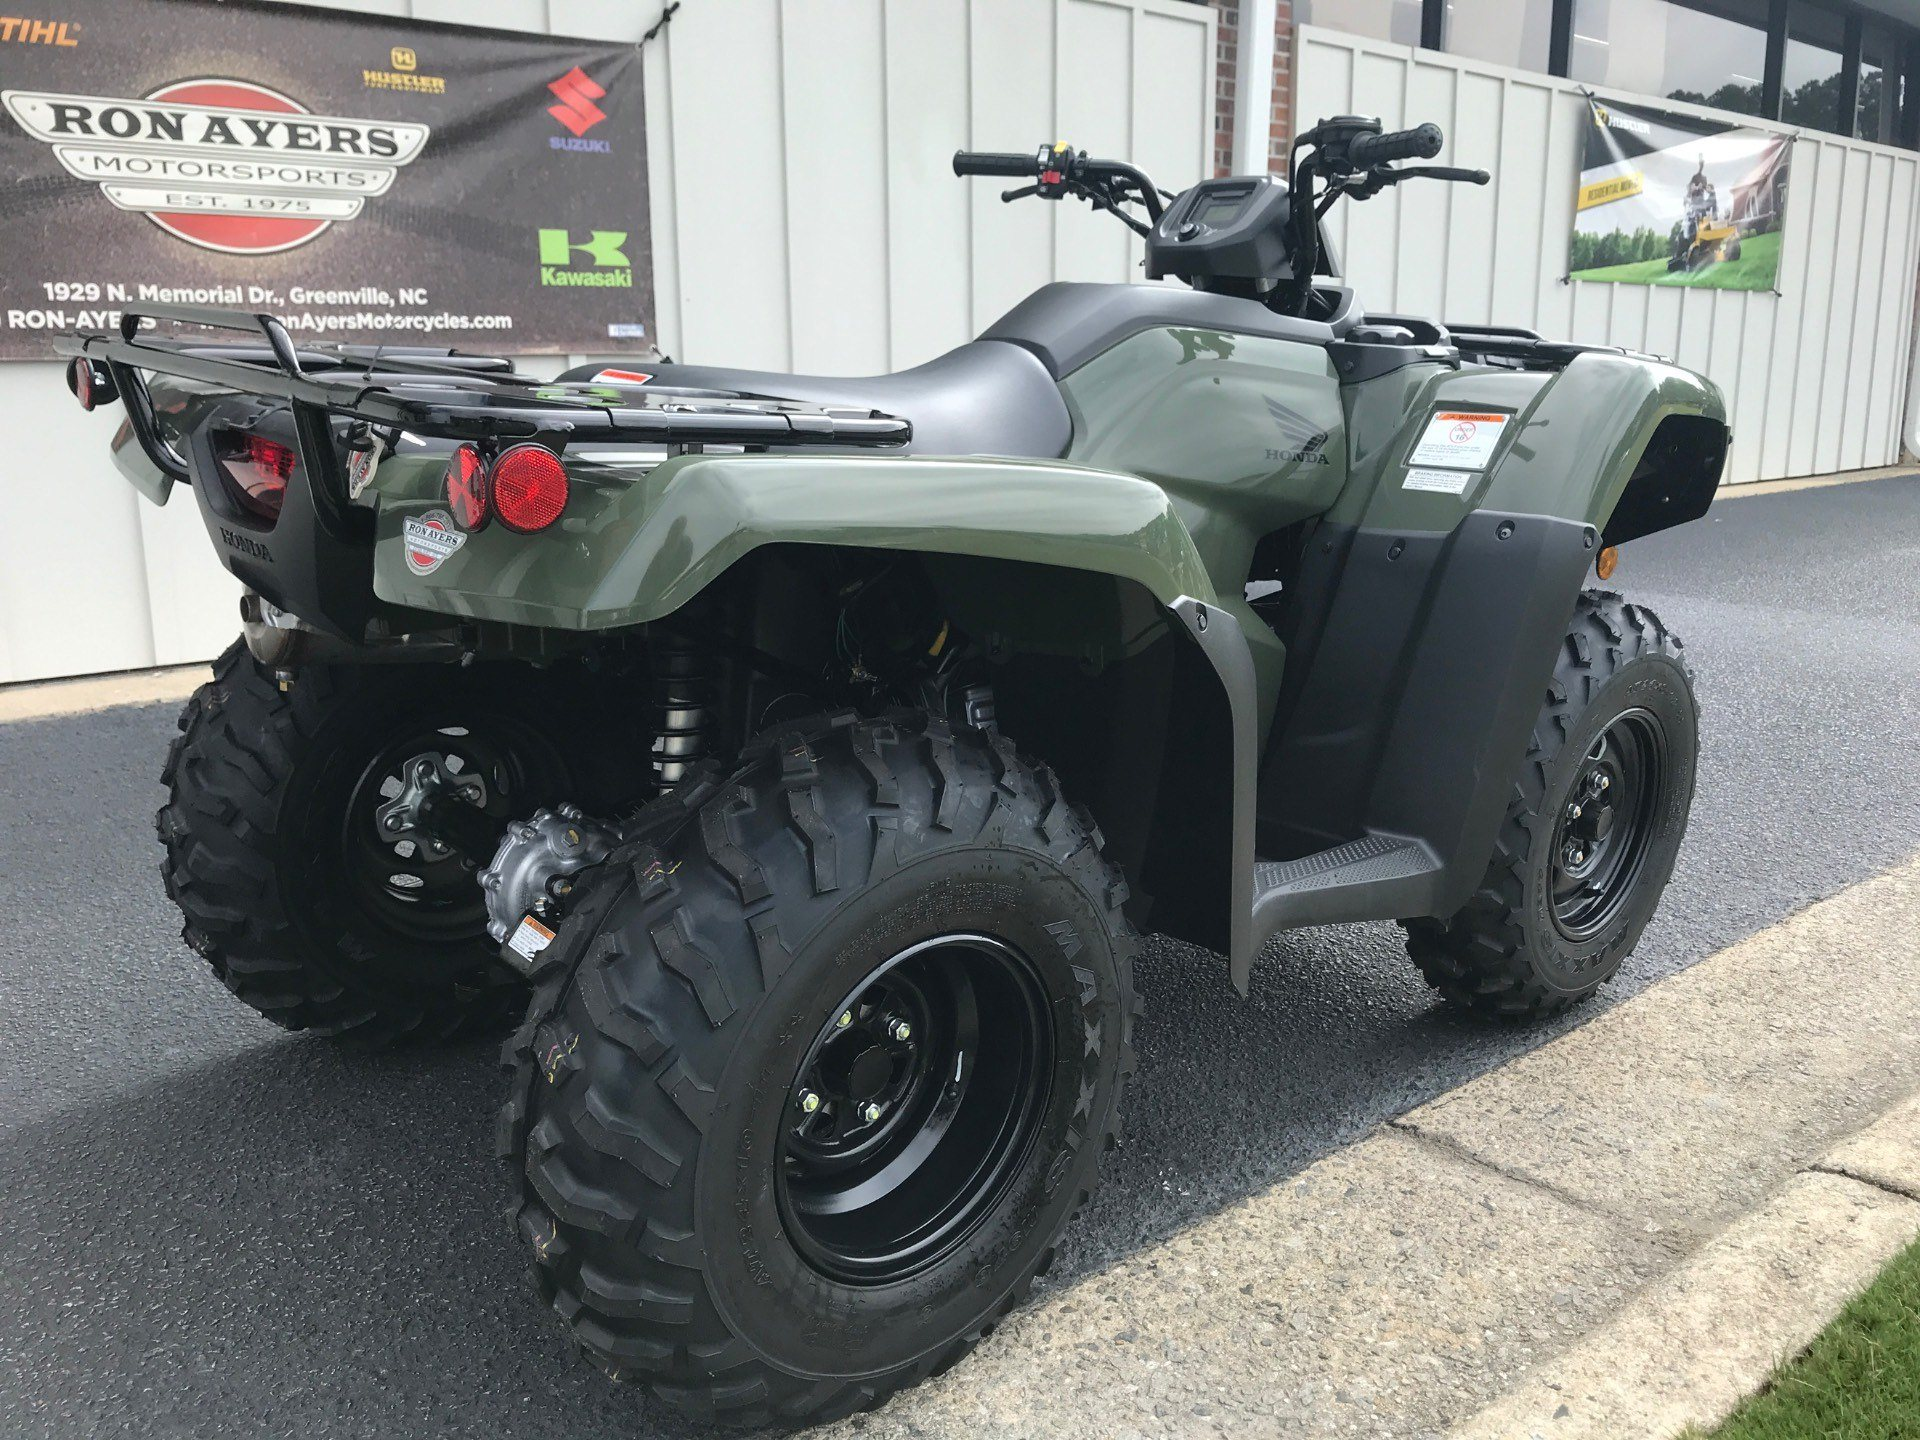 2021 Honda FourTrax Rancher 4x4 in Greenville, North Carolina - Photo 8